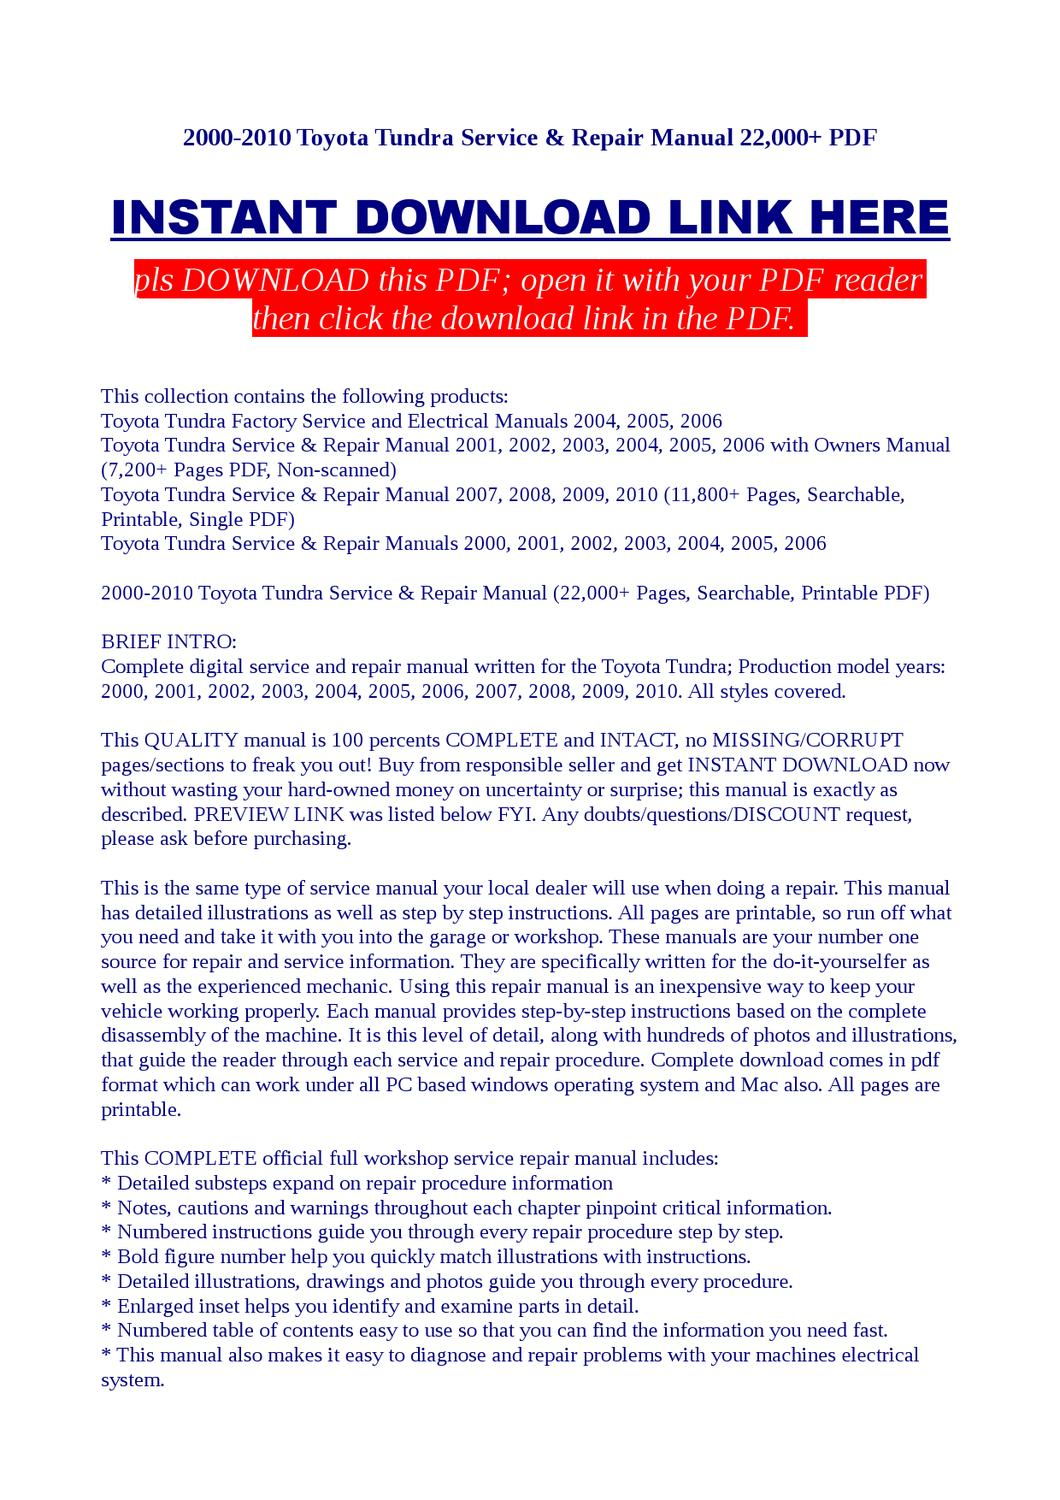 2000 2010 Toyota Tundra Service Repair Manual 22000 Pdf By Electrical Schematics Vorrax Issuu